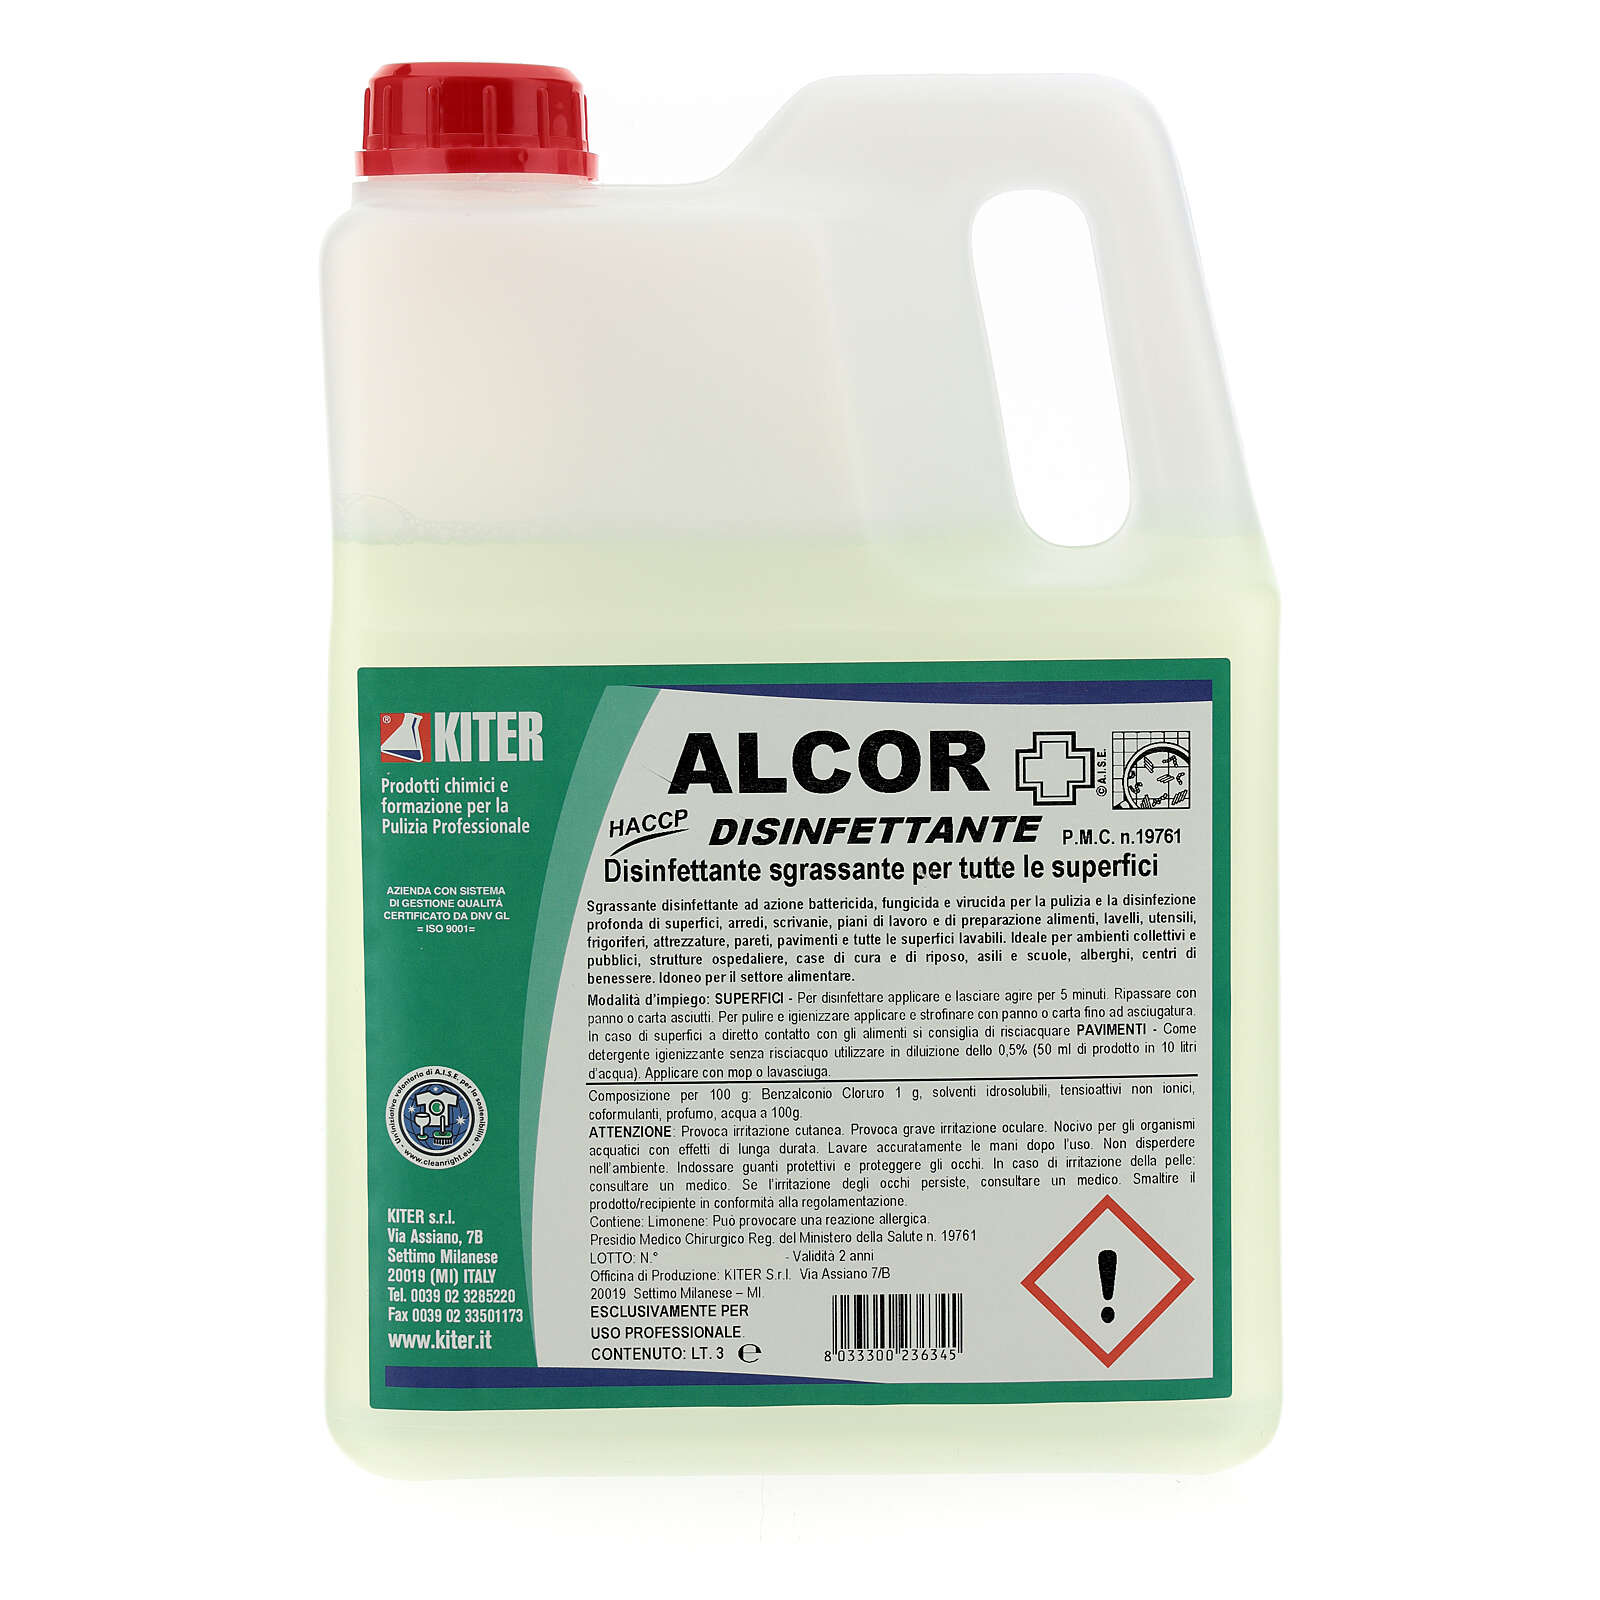 Disinfectant Alcor- 3 liters- Refill 3